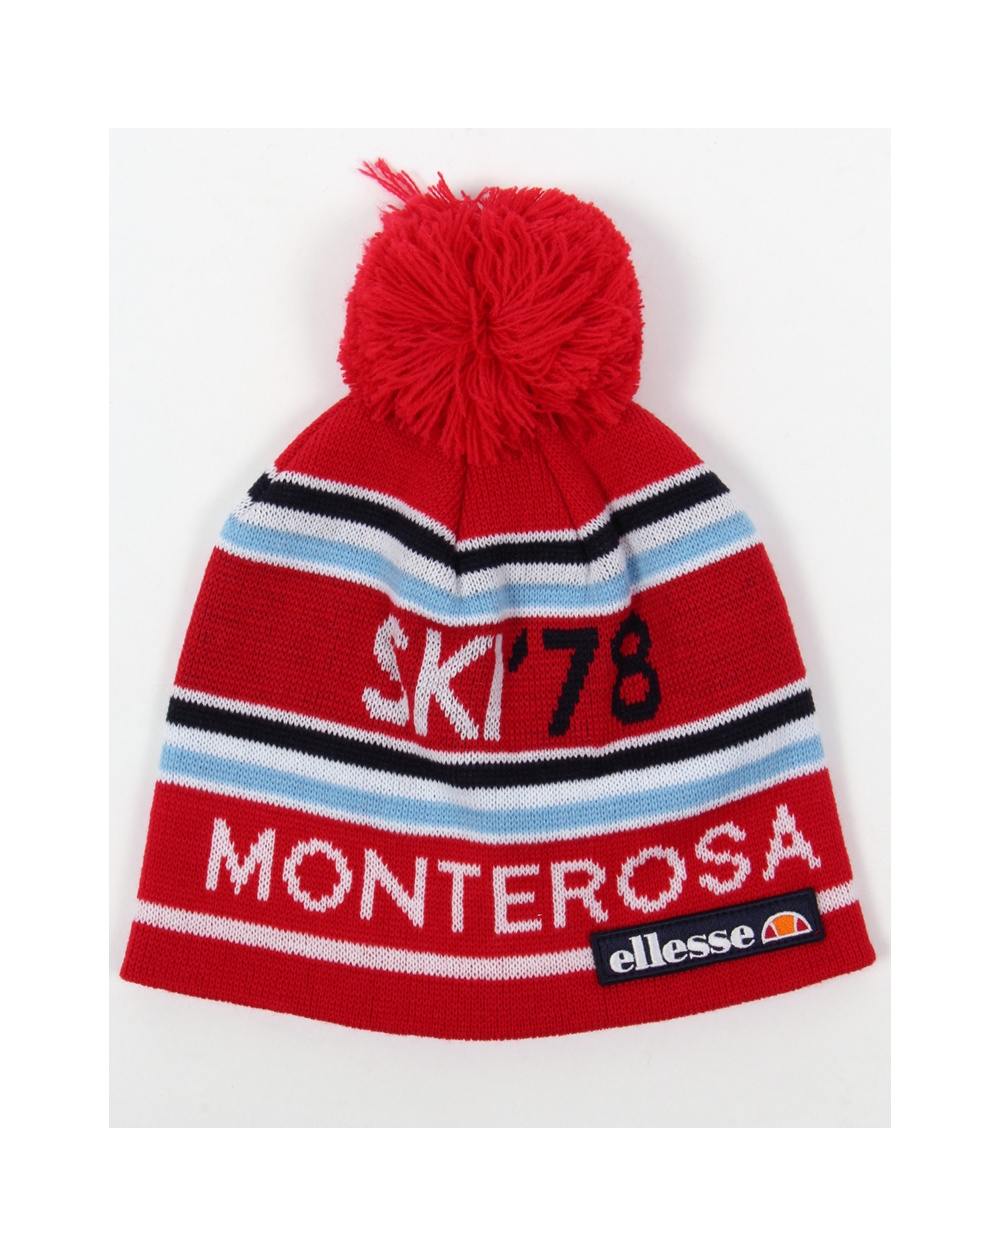 bba6c6b7 Ellesse Ettore Beanie Red - heritage ettore, beanie hat, red